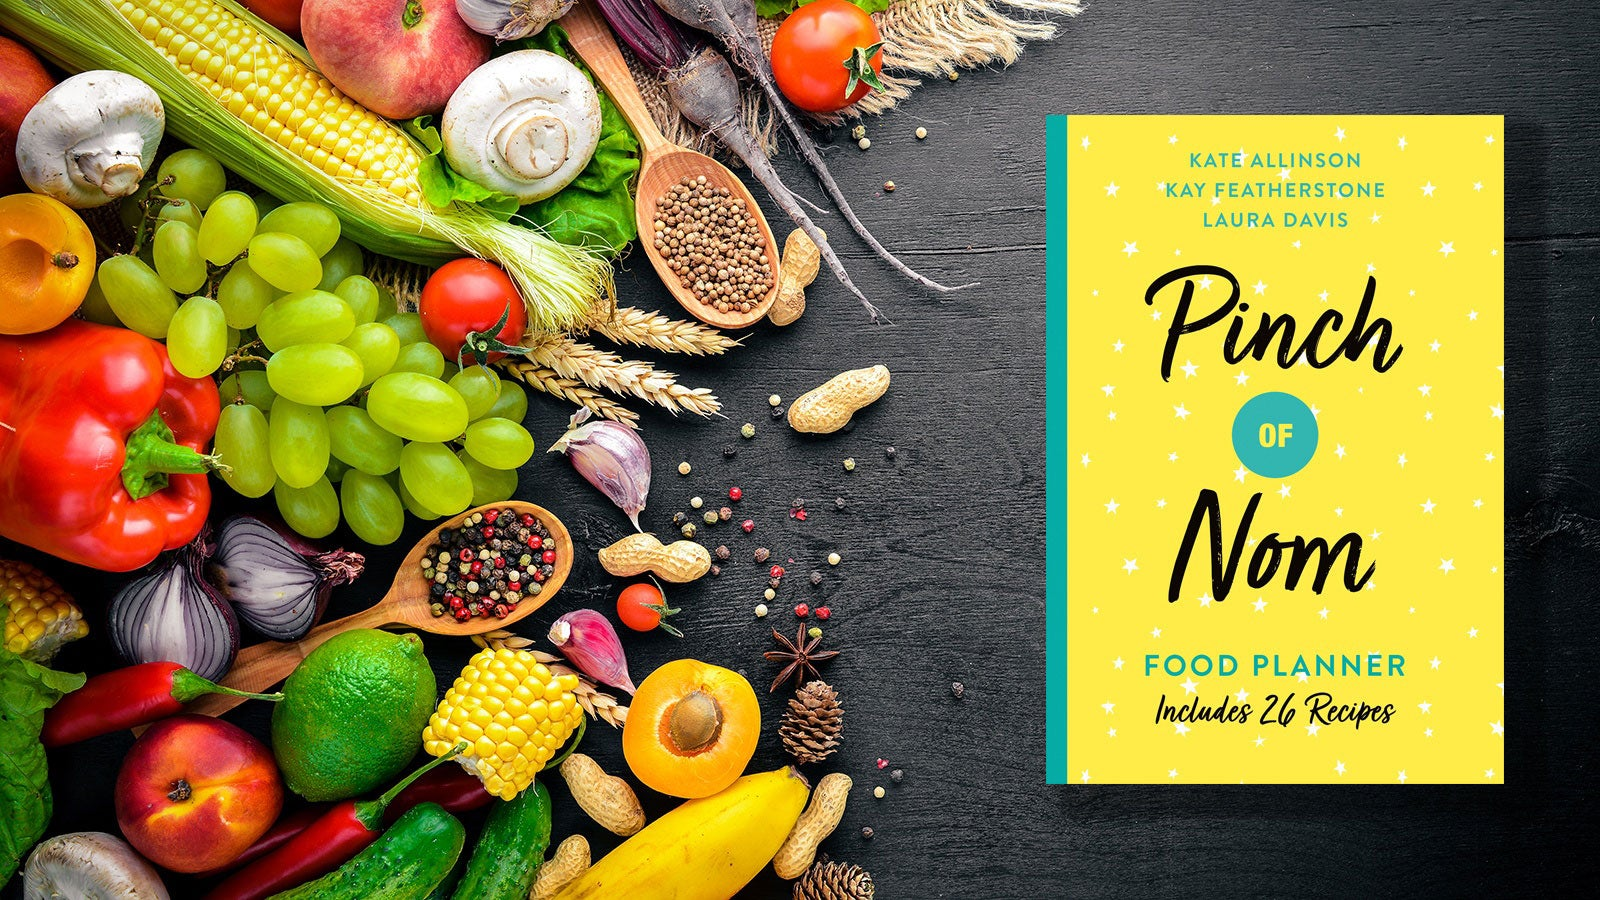 The Pinch of Nom Food Planner set on a black counter next to a pile of fruit and vegetables.